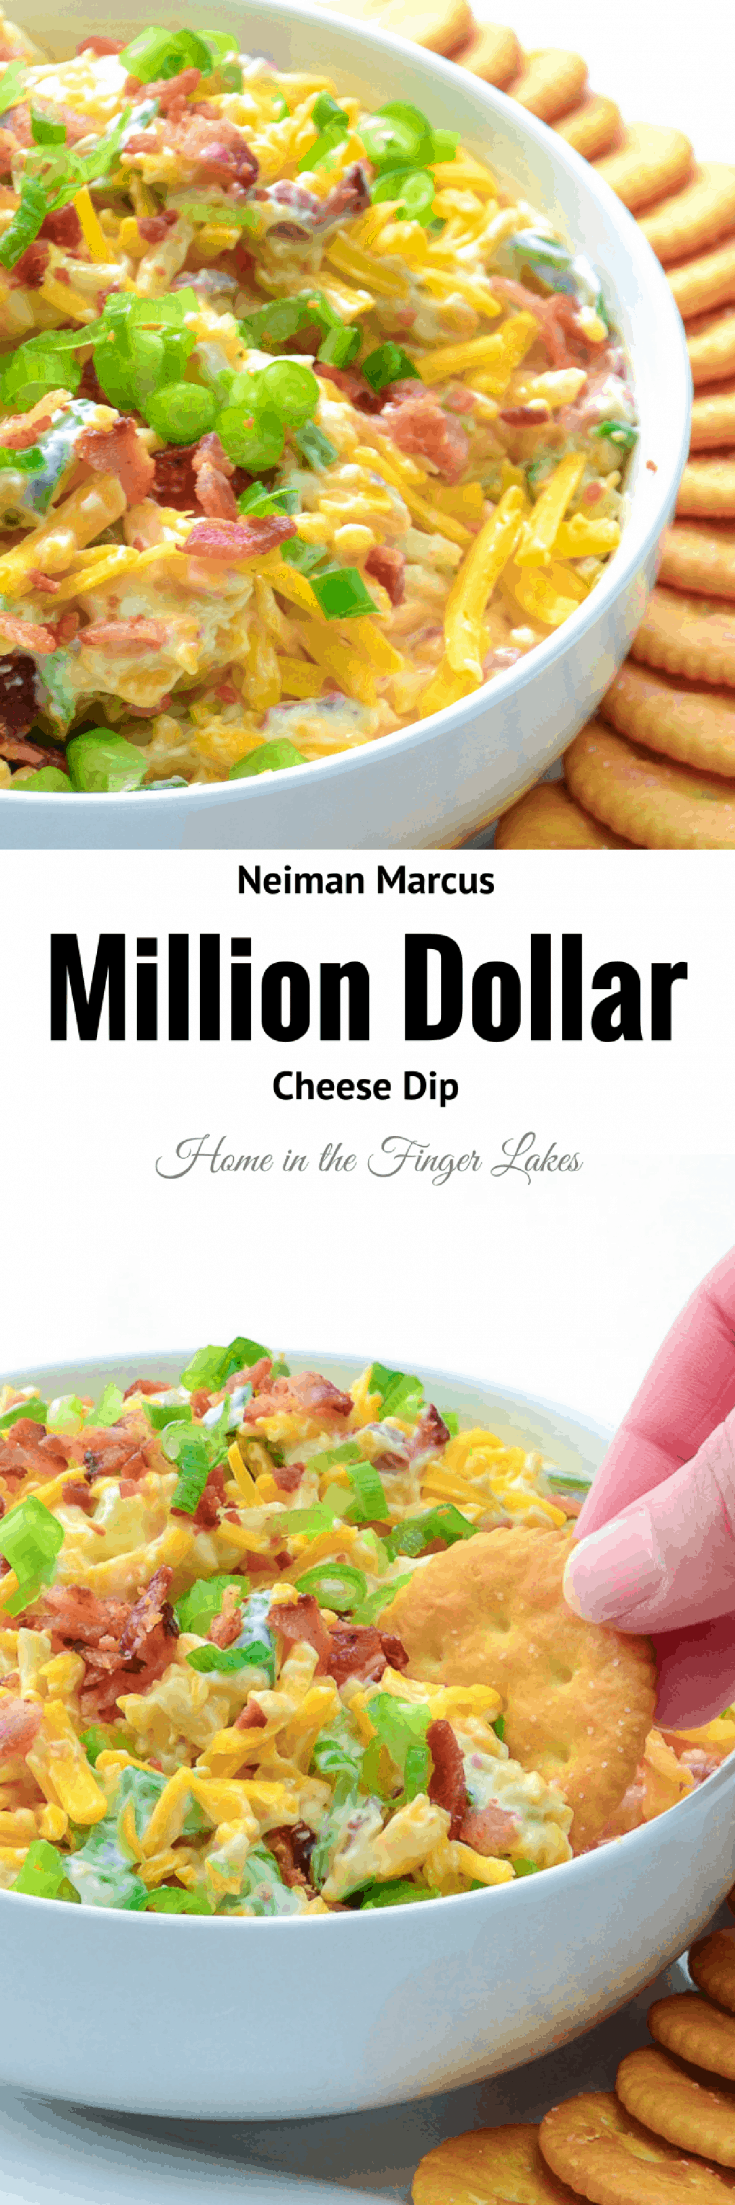 Neiman Marcus Cheese Dip is always one of the most popular items on the appetizer table at parties. Made with only 5 ingredients, this dip is a breeze to mix up but tastes like a million dollars.